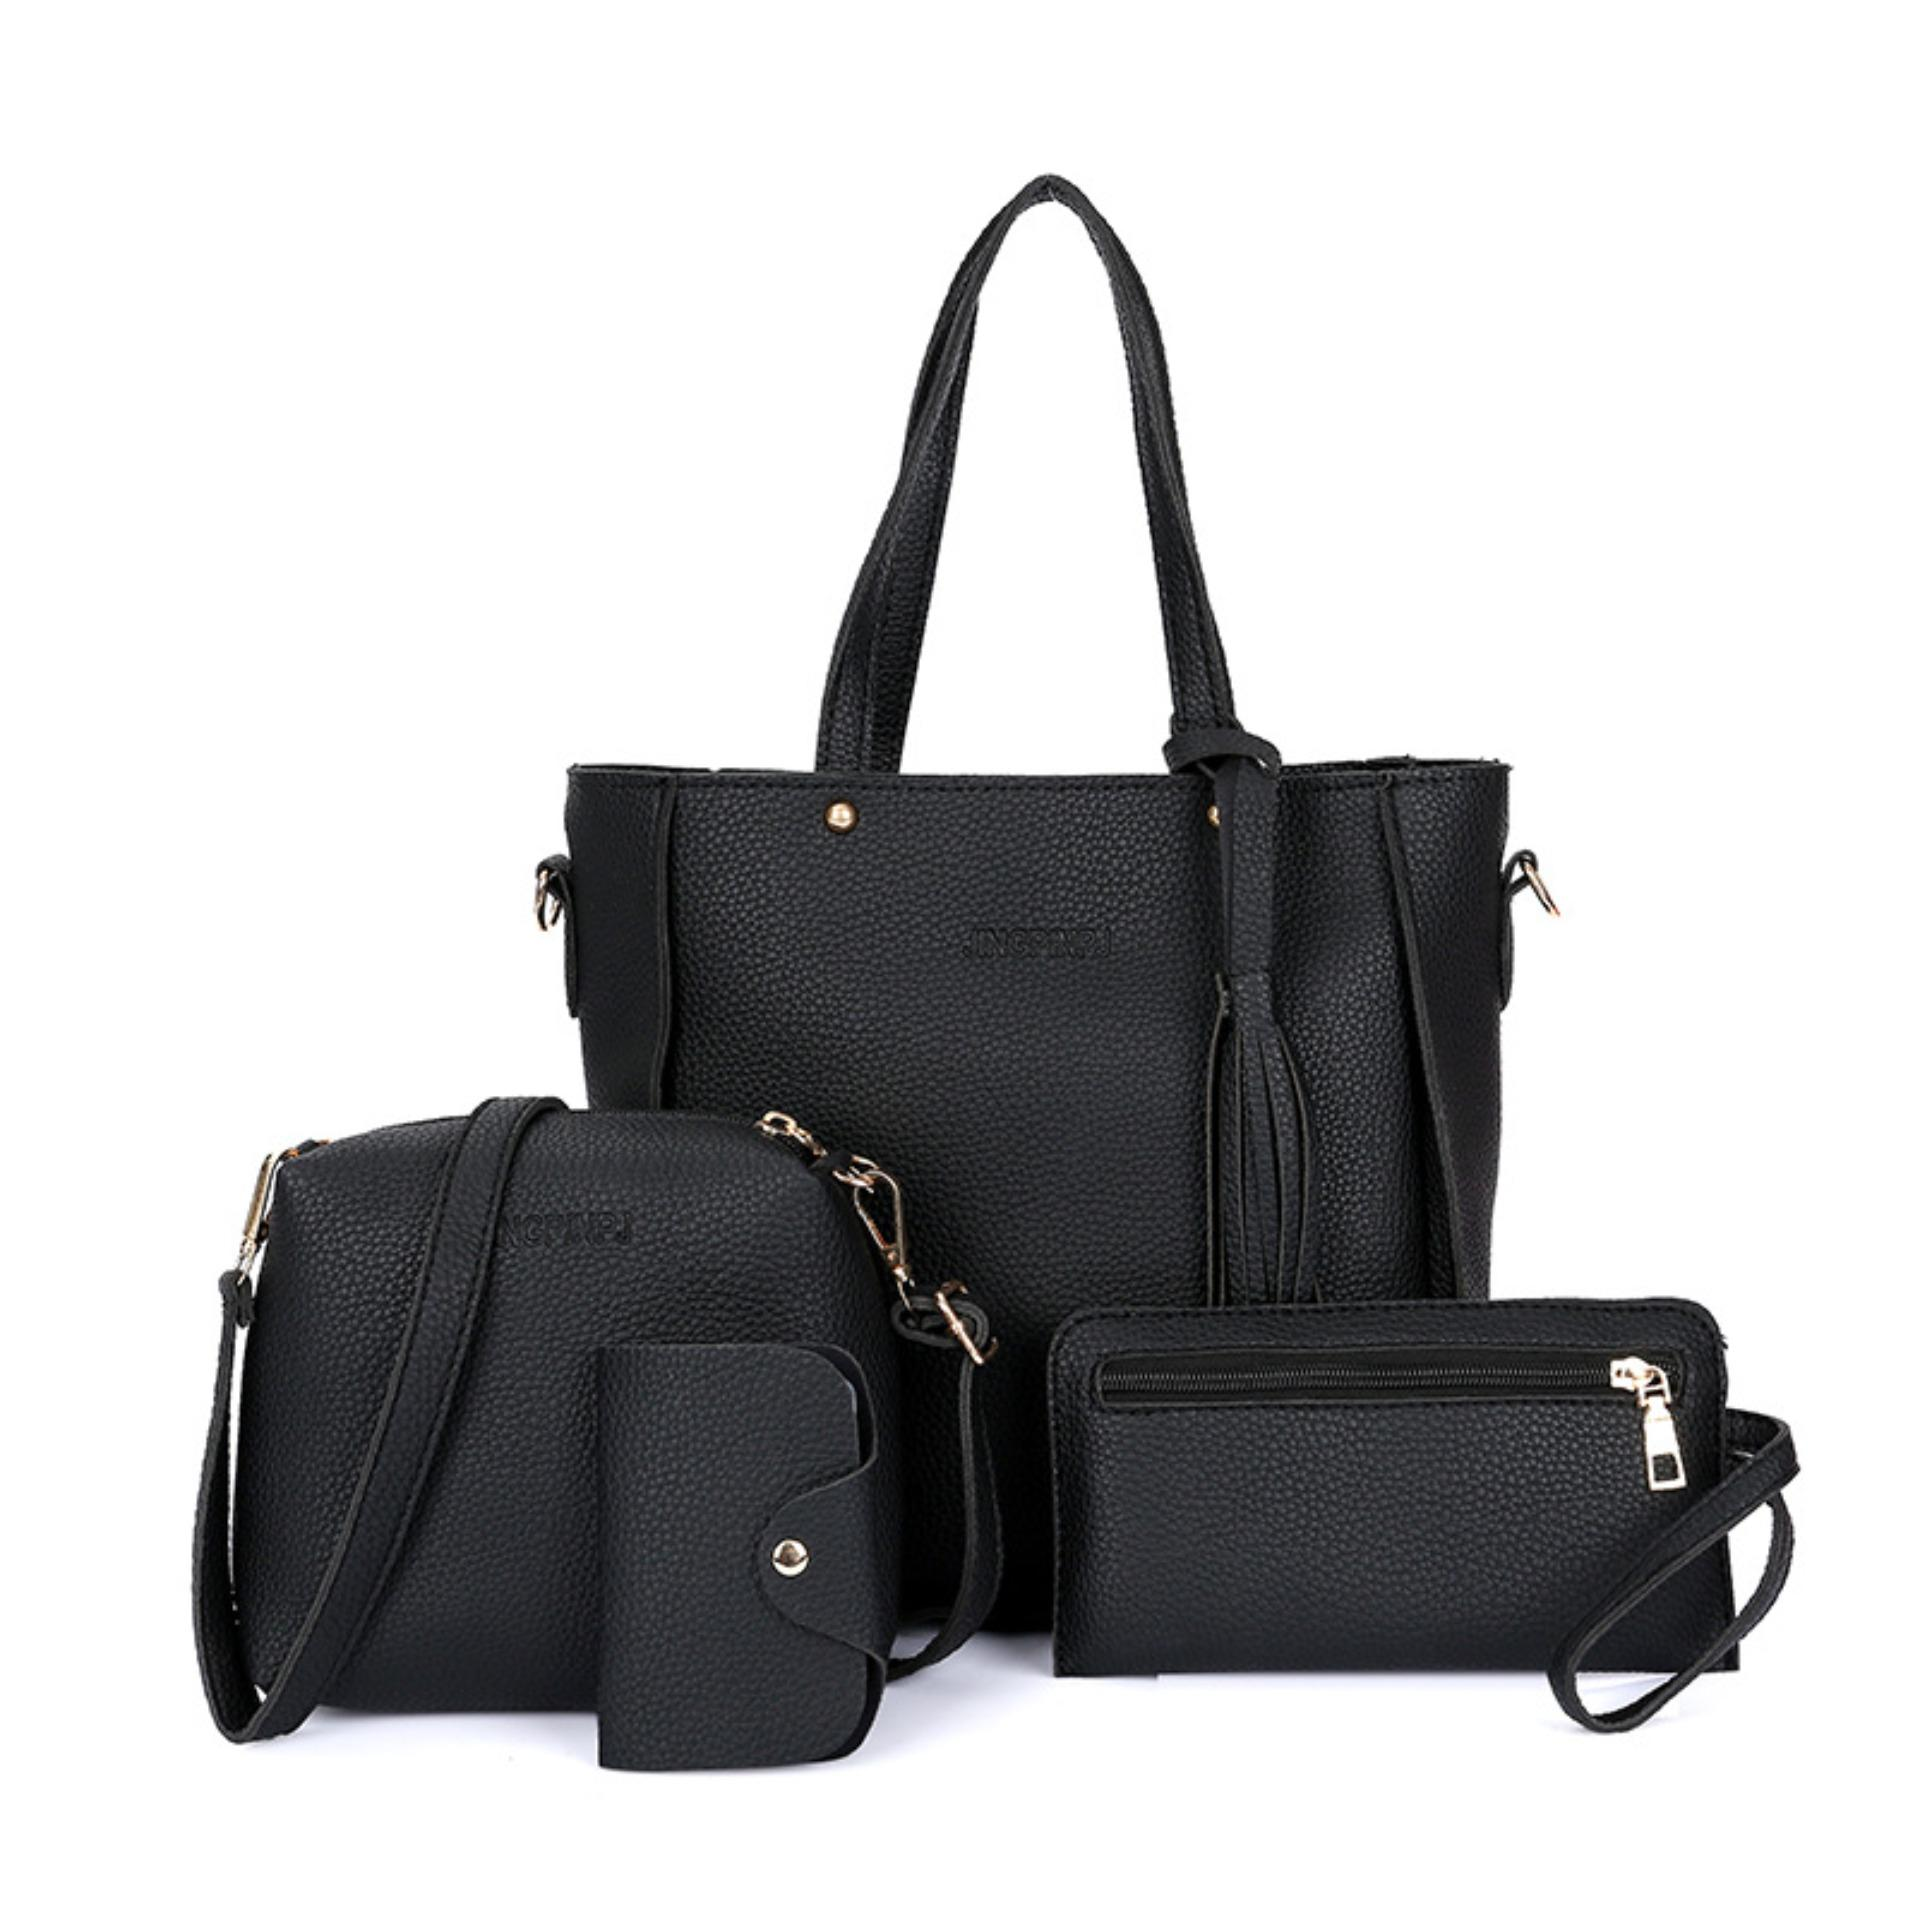 b514a81acb Bags for Women for sale - Womens Bags online brands